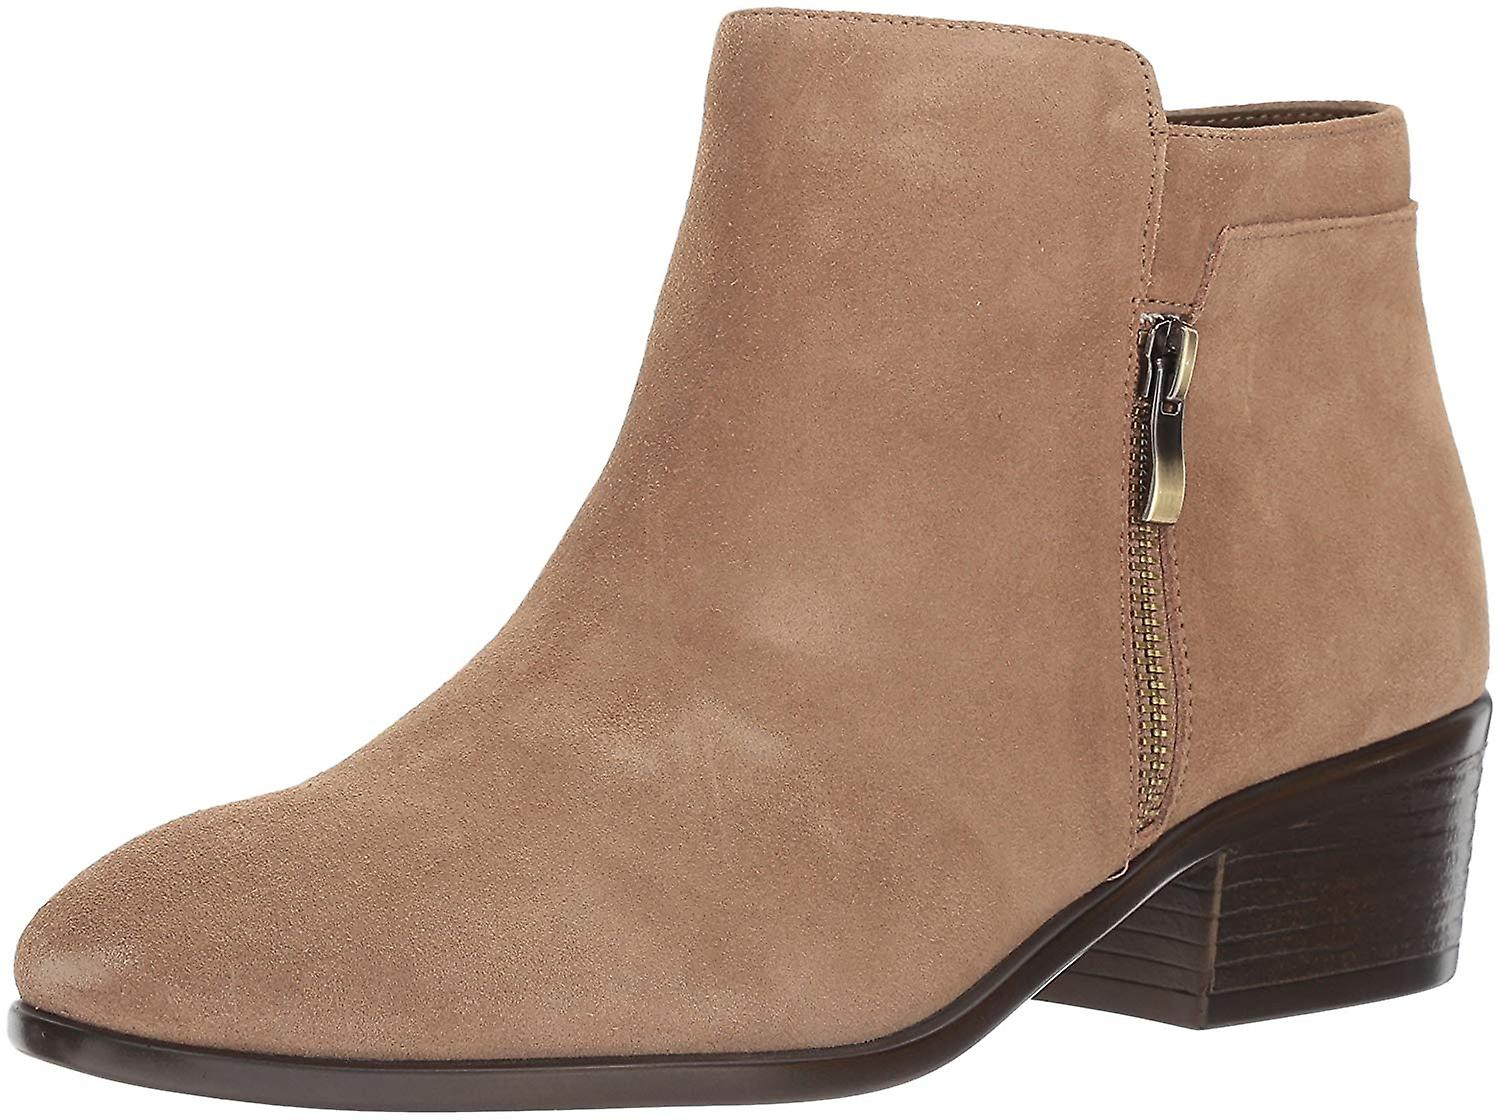 Aerosoles Womens Mythology Leather Almond Toe Ankle Fashion Boots MsNFH